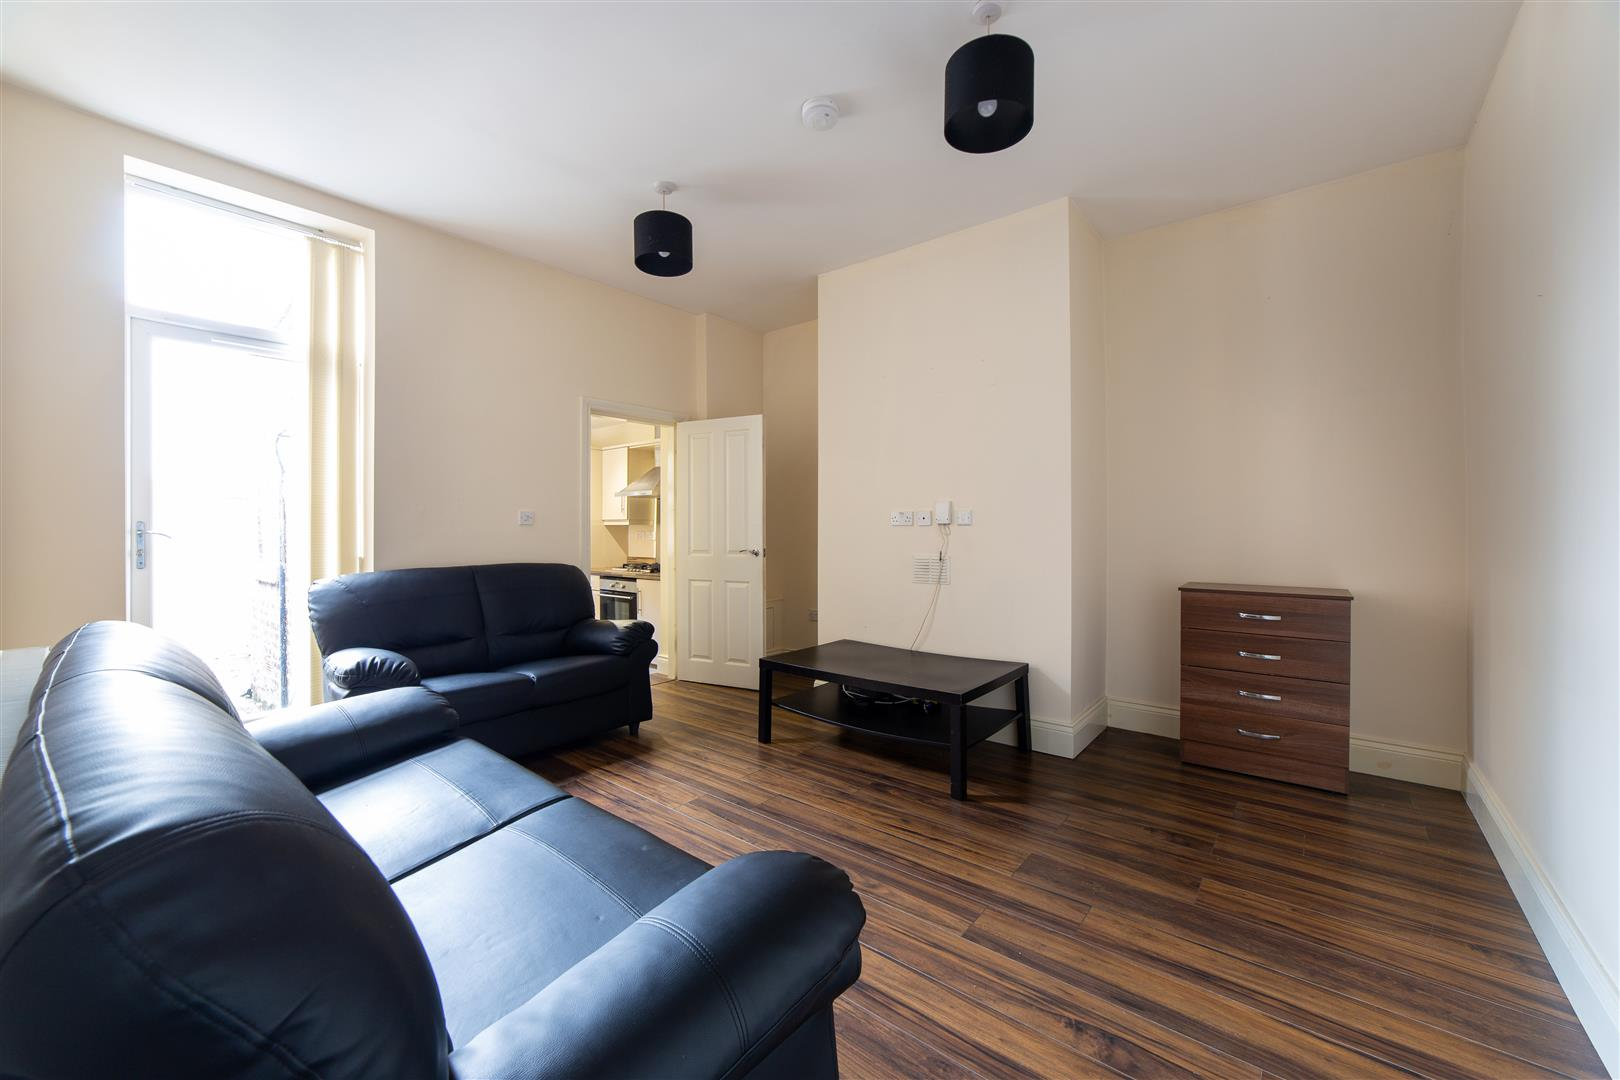 2 bed flat to rent in Newcastle Upon Tyne, NE6 5DQ 0